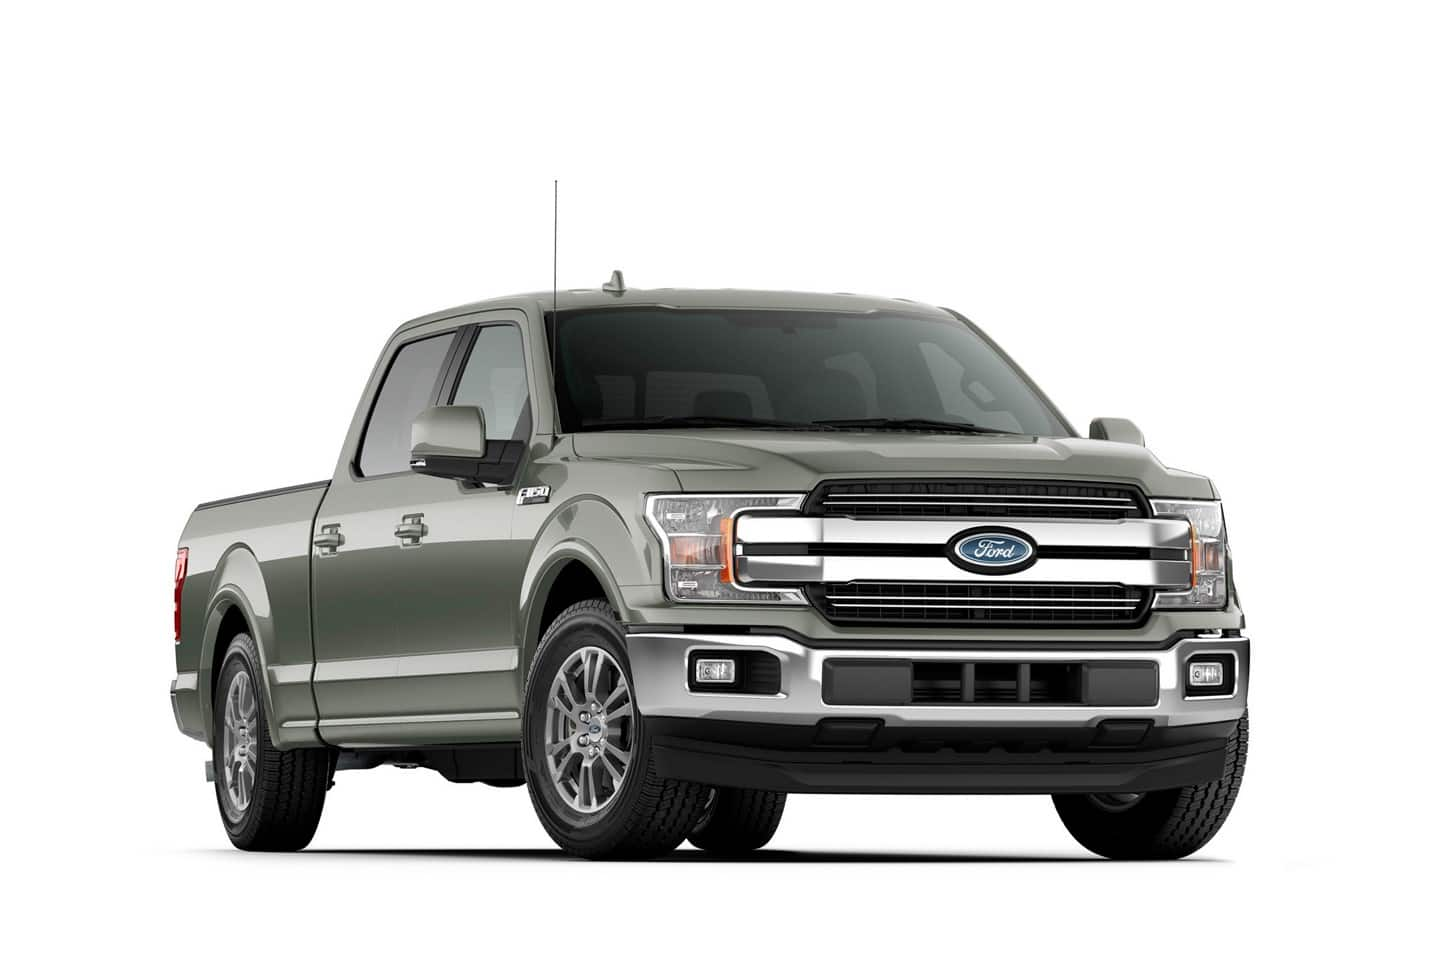 78 Gallery of 2019 Ford 150 Lariat Overview for 2019 Ford 150 Lariat